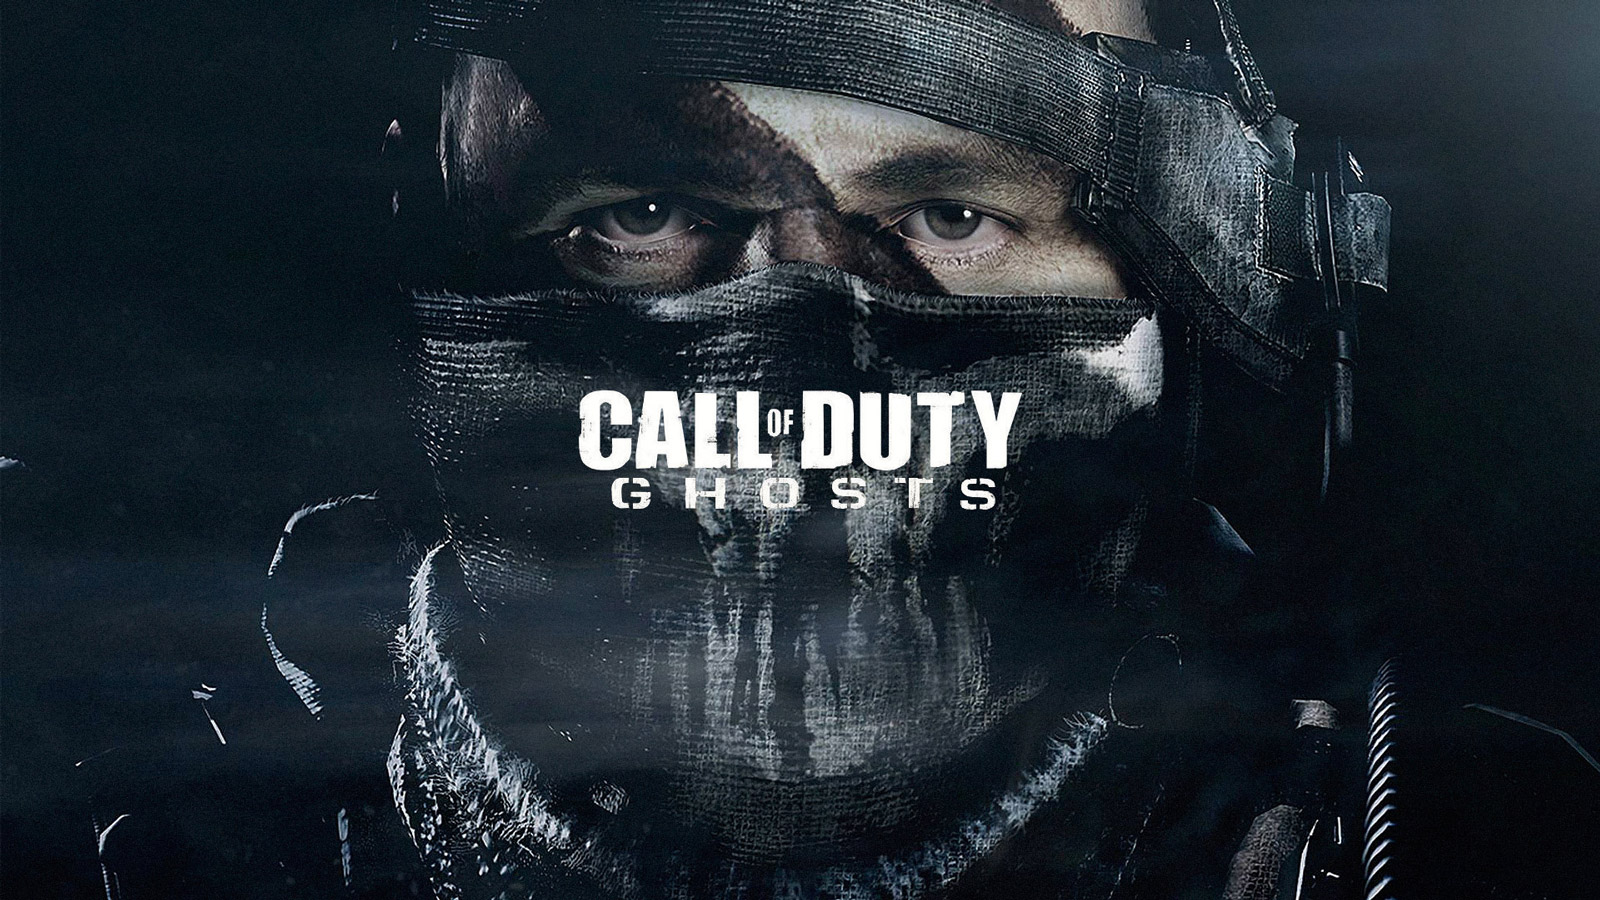 Call of Duty: Ghosts Wallpaper in 1600x900